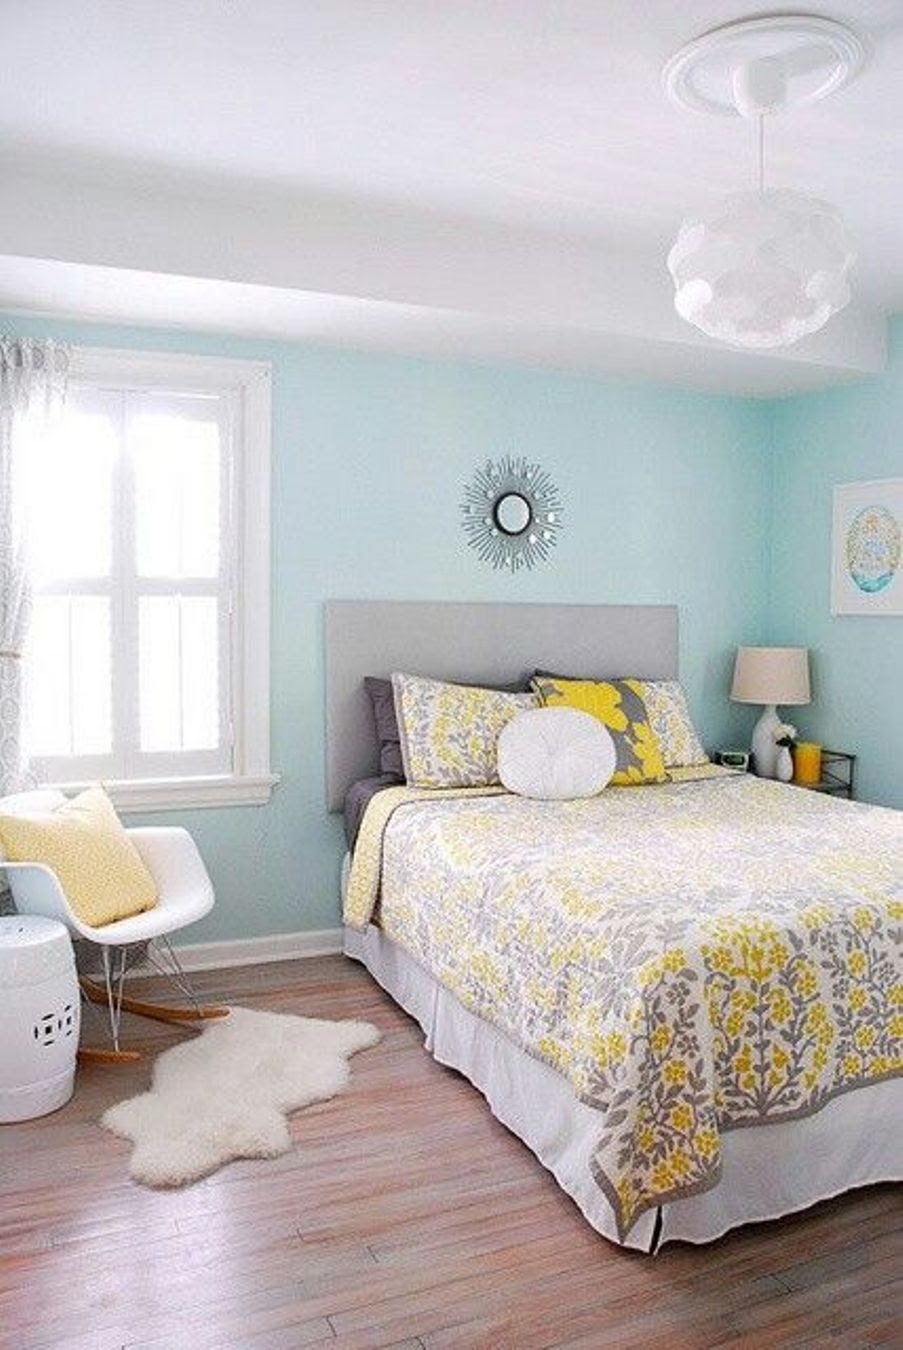 Best Paint iColorsi for Small iRoomi a Some Tips a HomesFeed